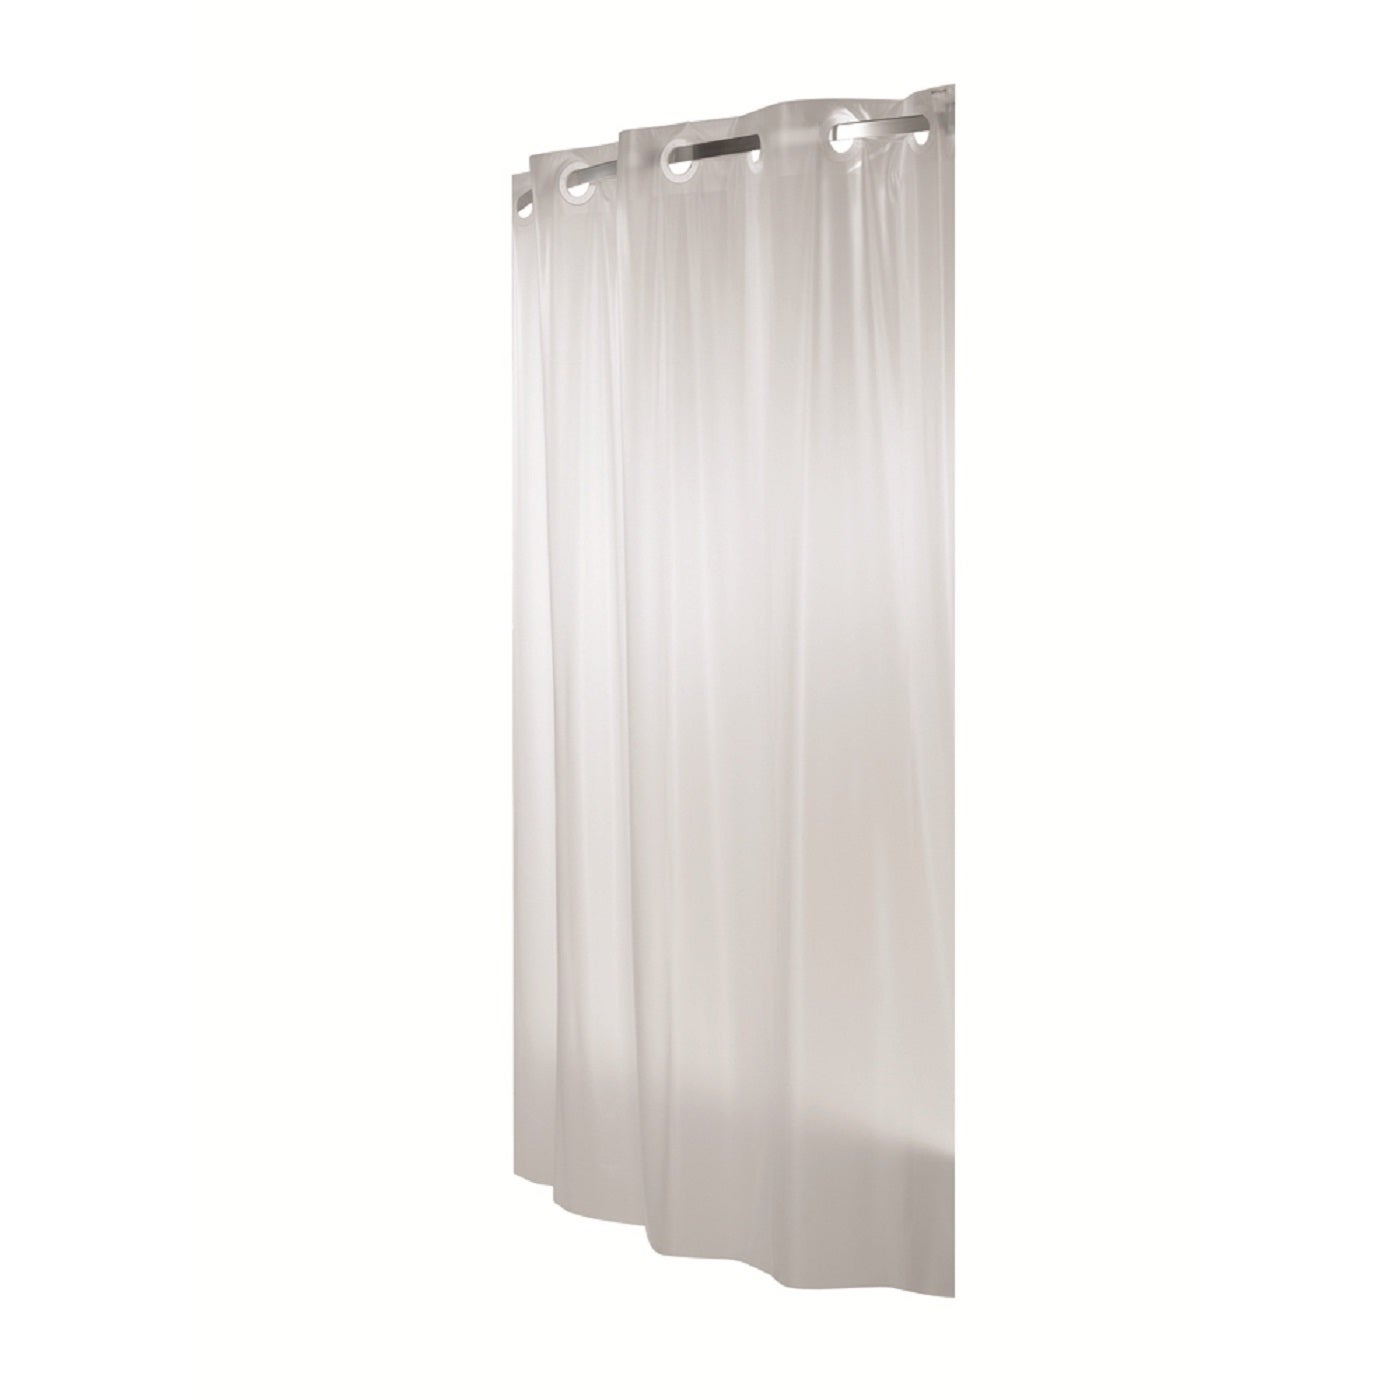 Hookless Shower Curtain Liner Overstock Shopping The Best Prices On Shower Liners